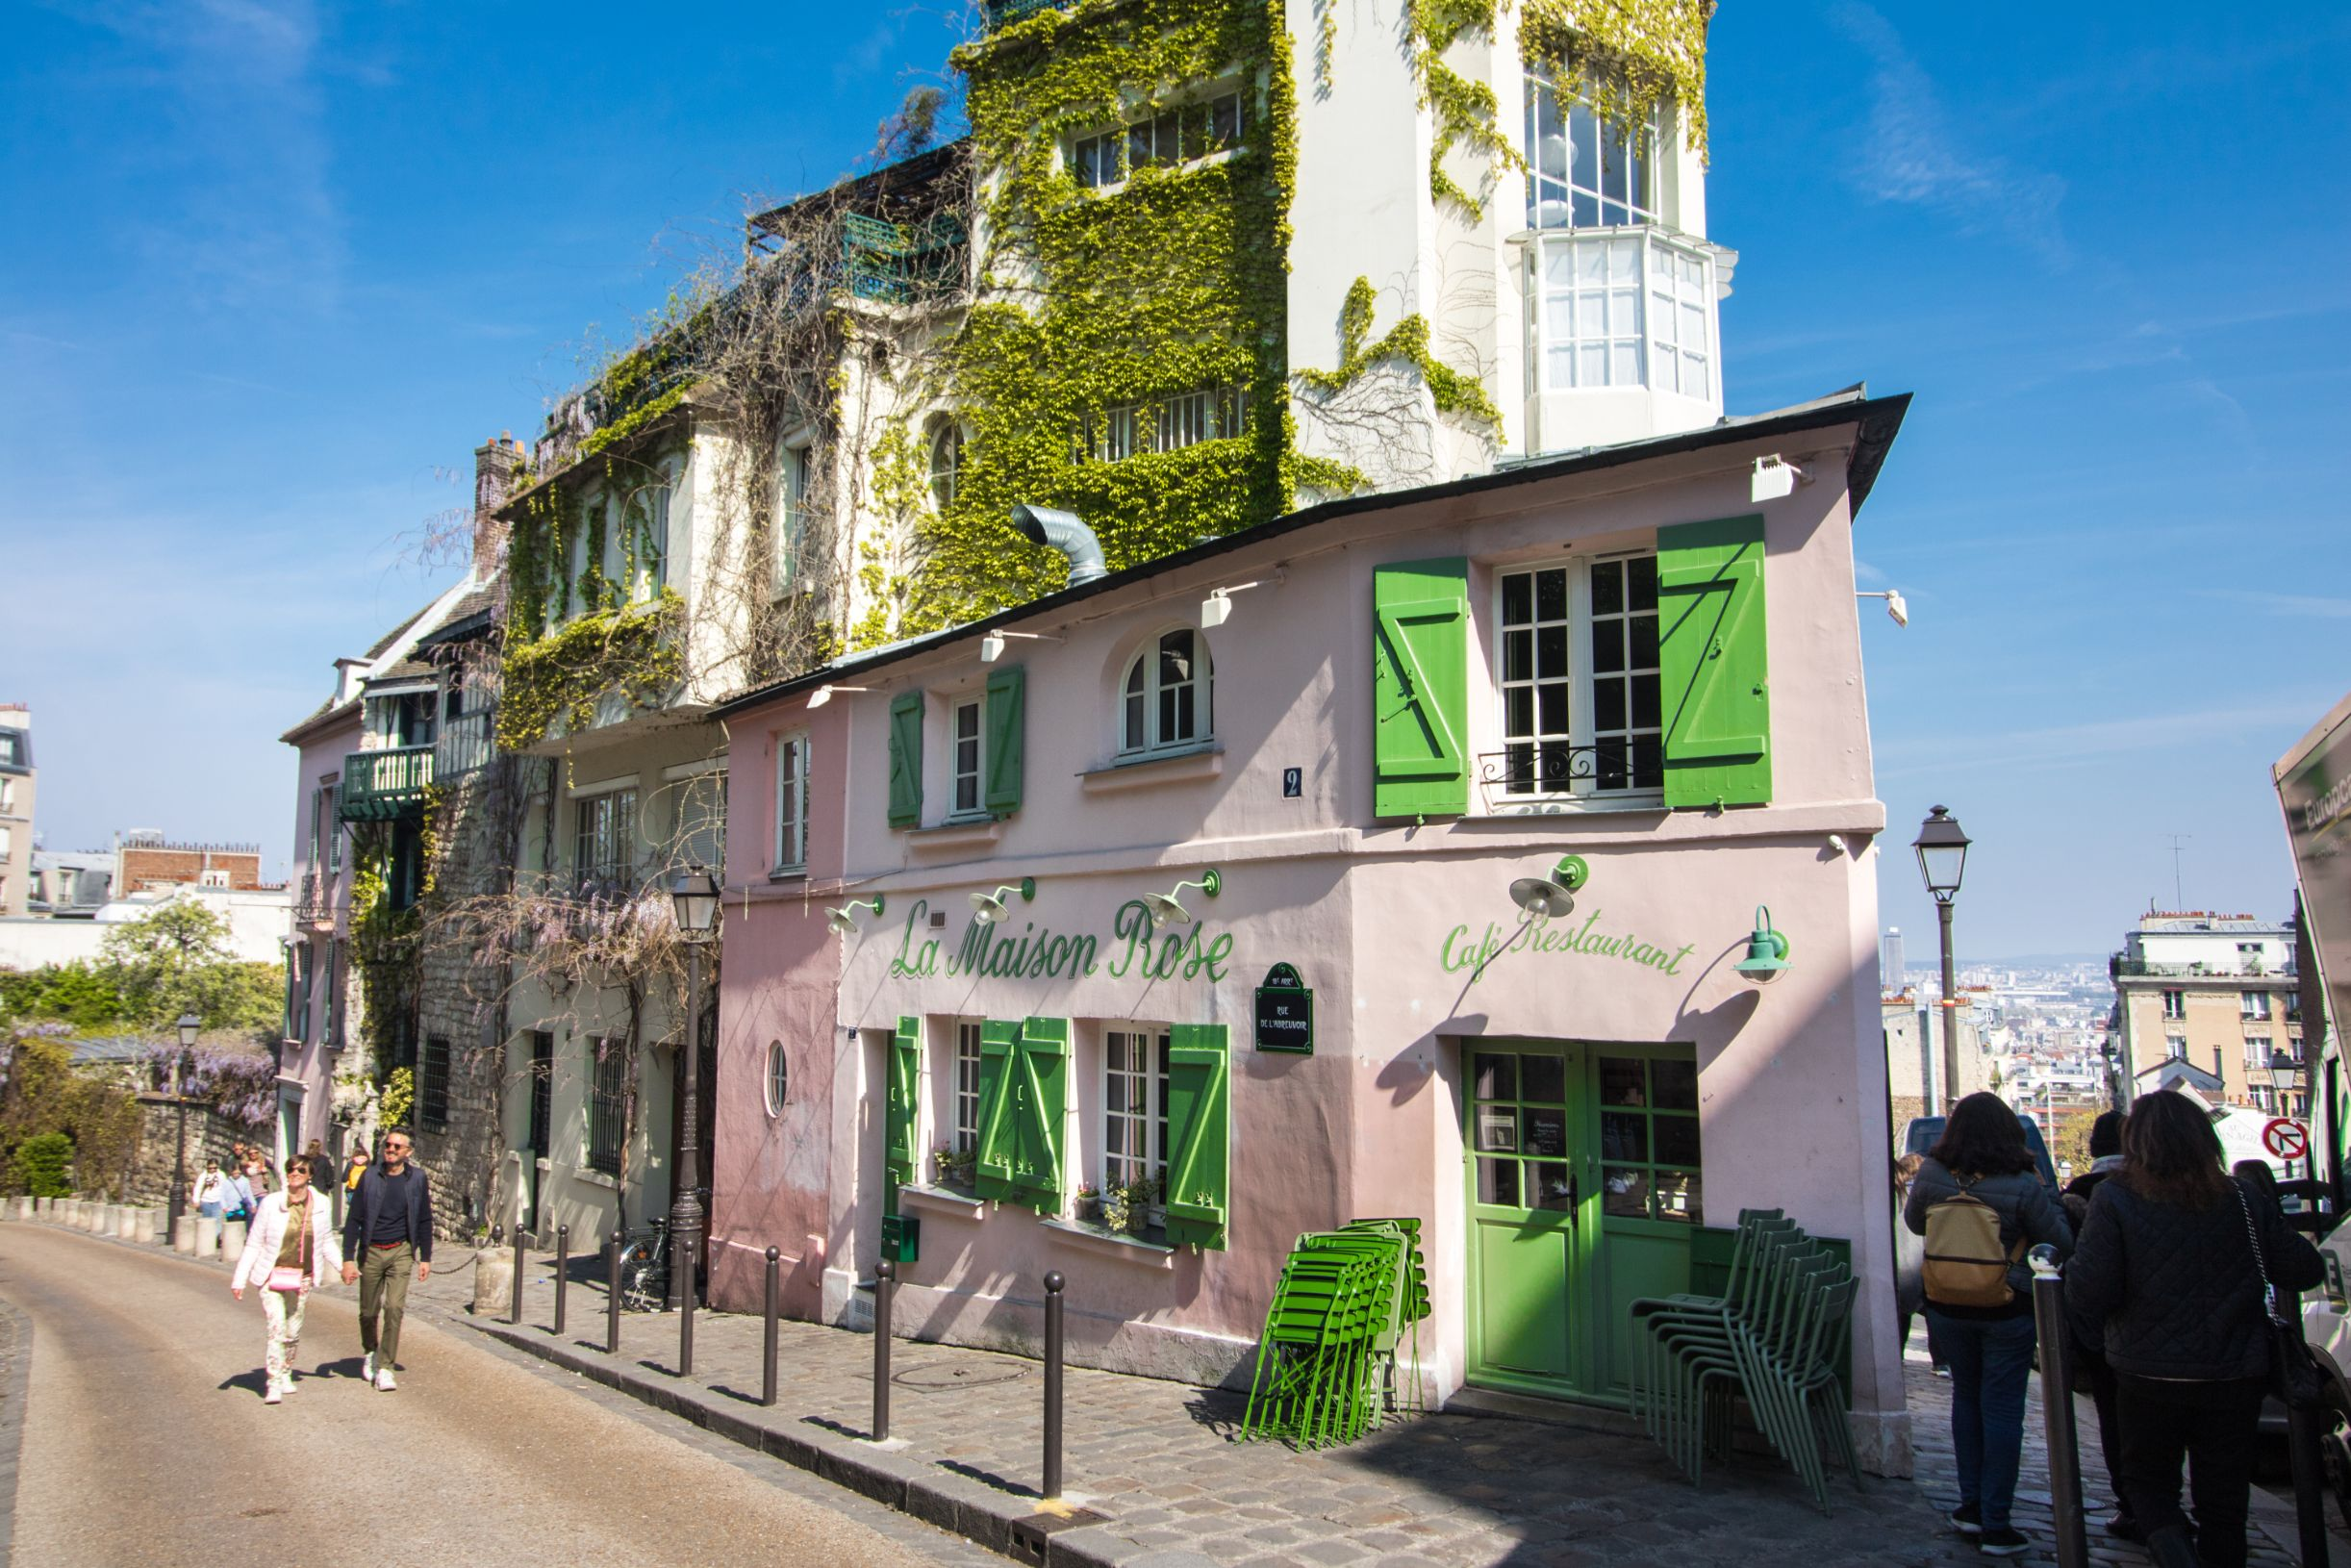 La Maison Rose in Montmartre Paris. Iconic pink Instagrammable cafe in Paris with bright green windows and doors and ivy climbing up the walls. Blue skies.